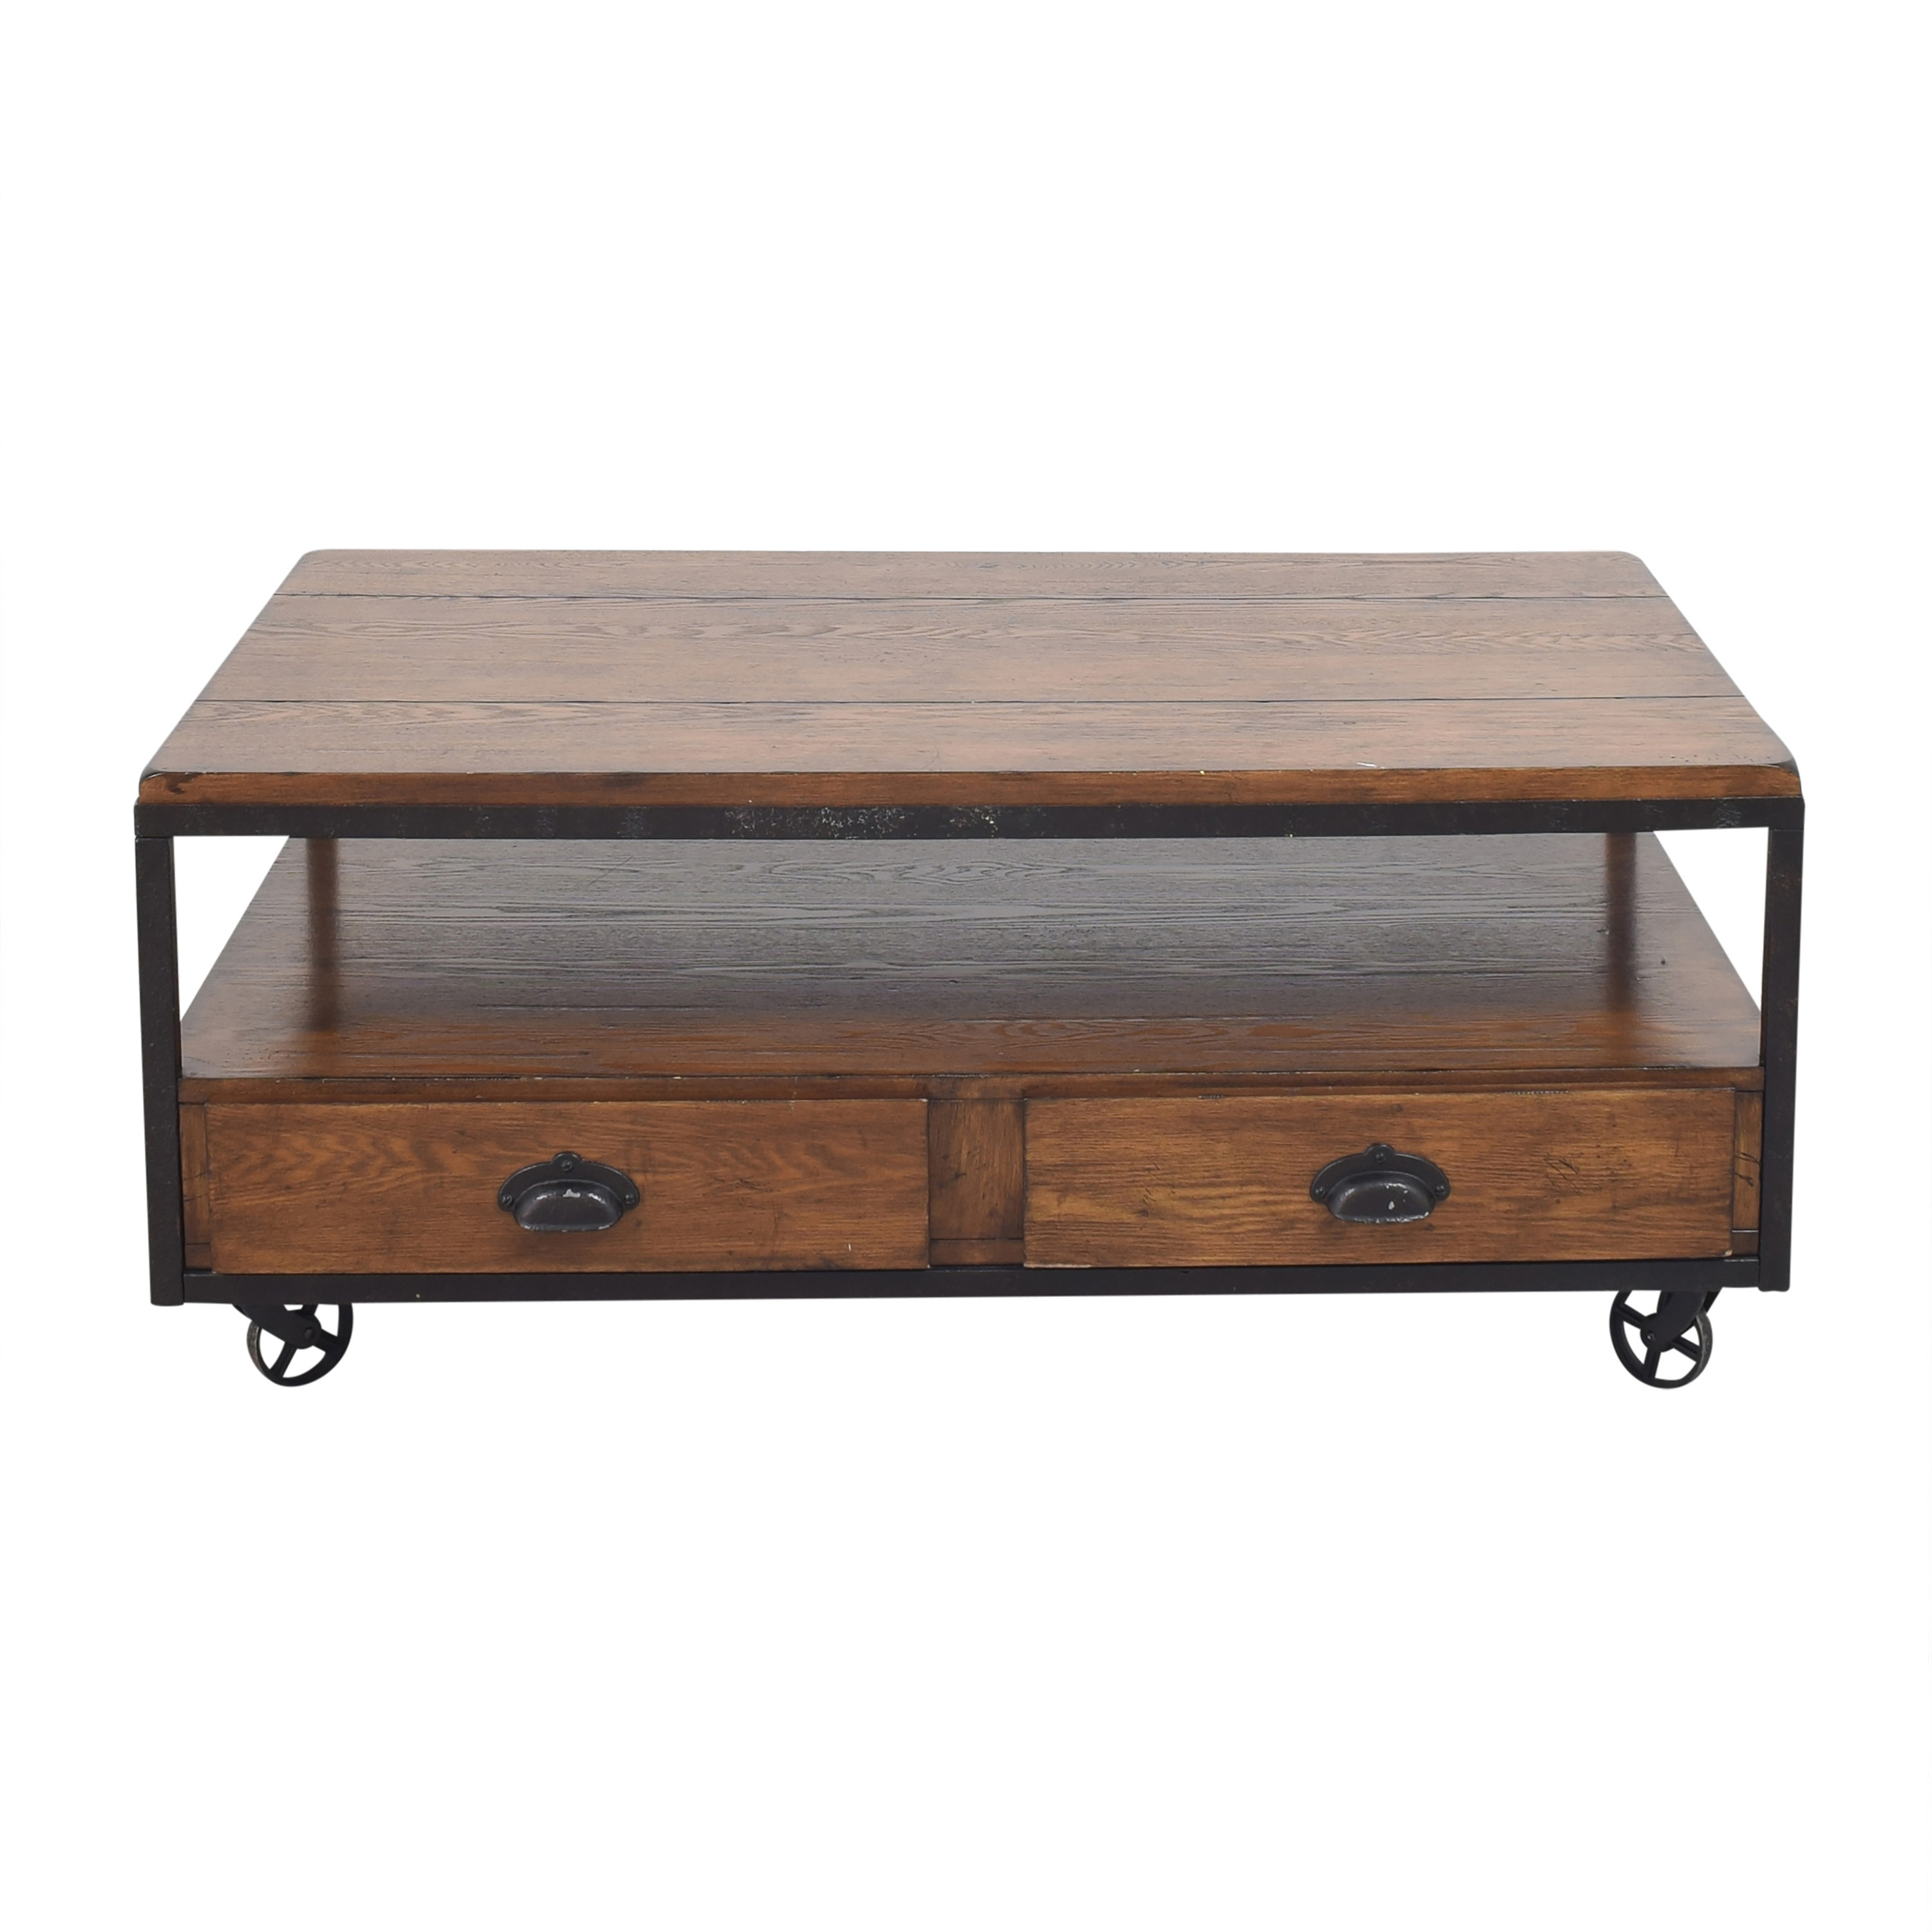 buy Hammary Baja Industrial Coffee Table Hammary Furniture Coffee Tables